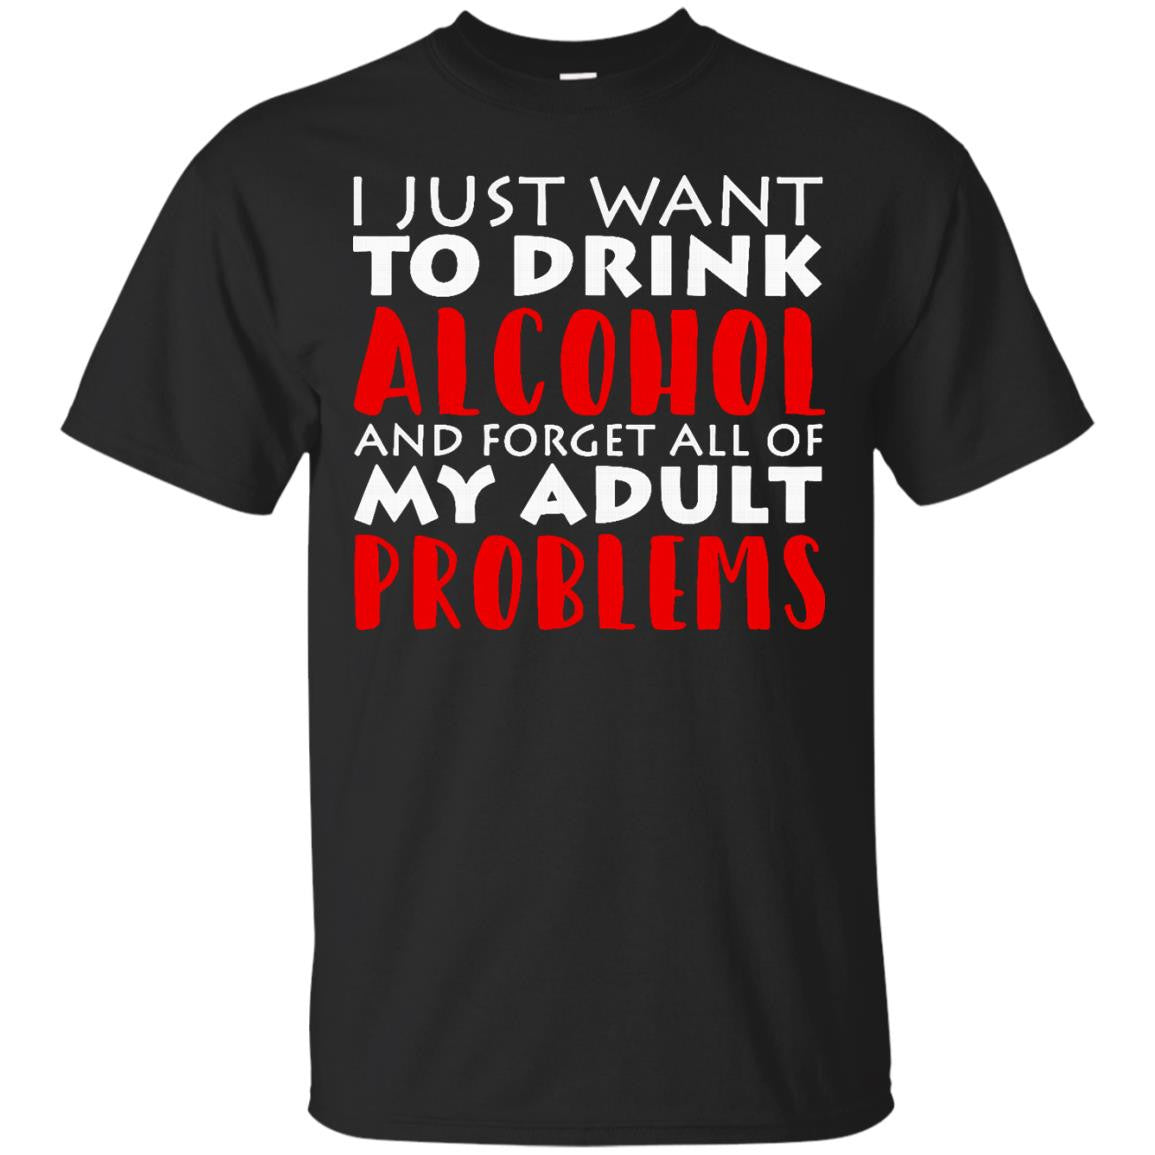 Alcohol T-shirts Just Want To Drink Alcohol & Forget All Of My Adult Problems Hoodies Sweatshirts